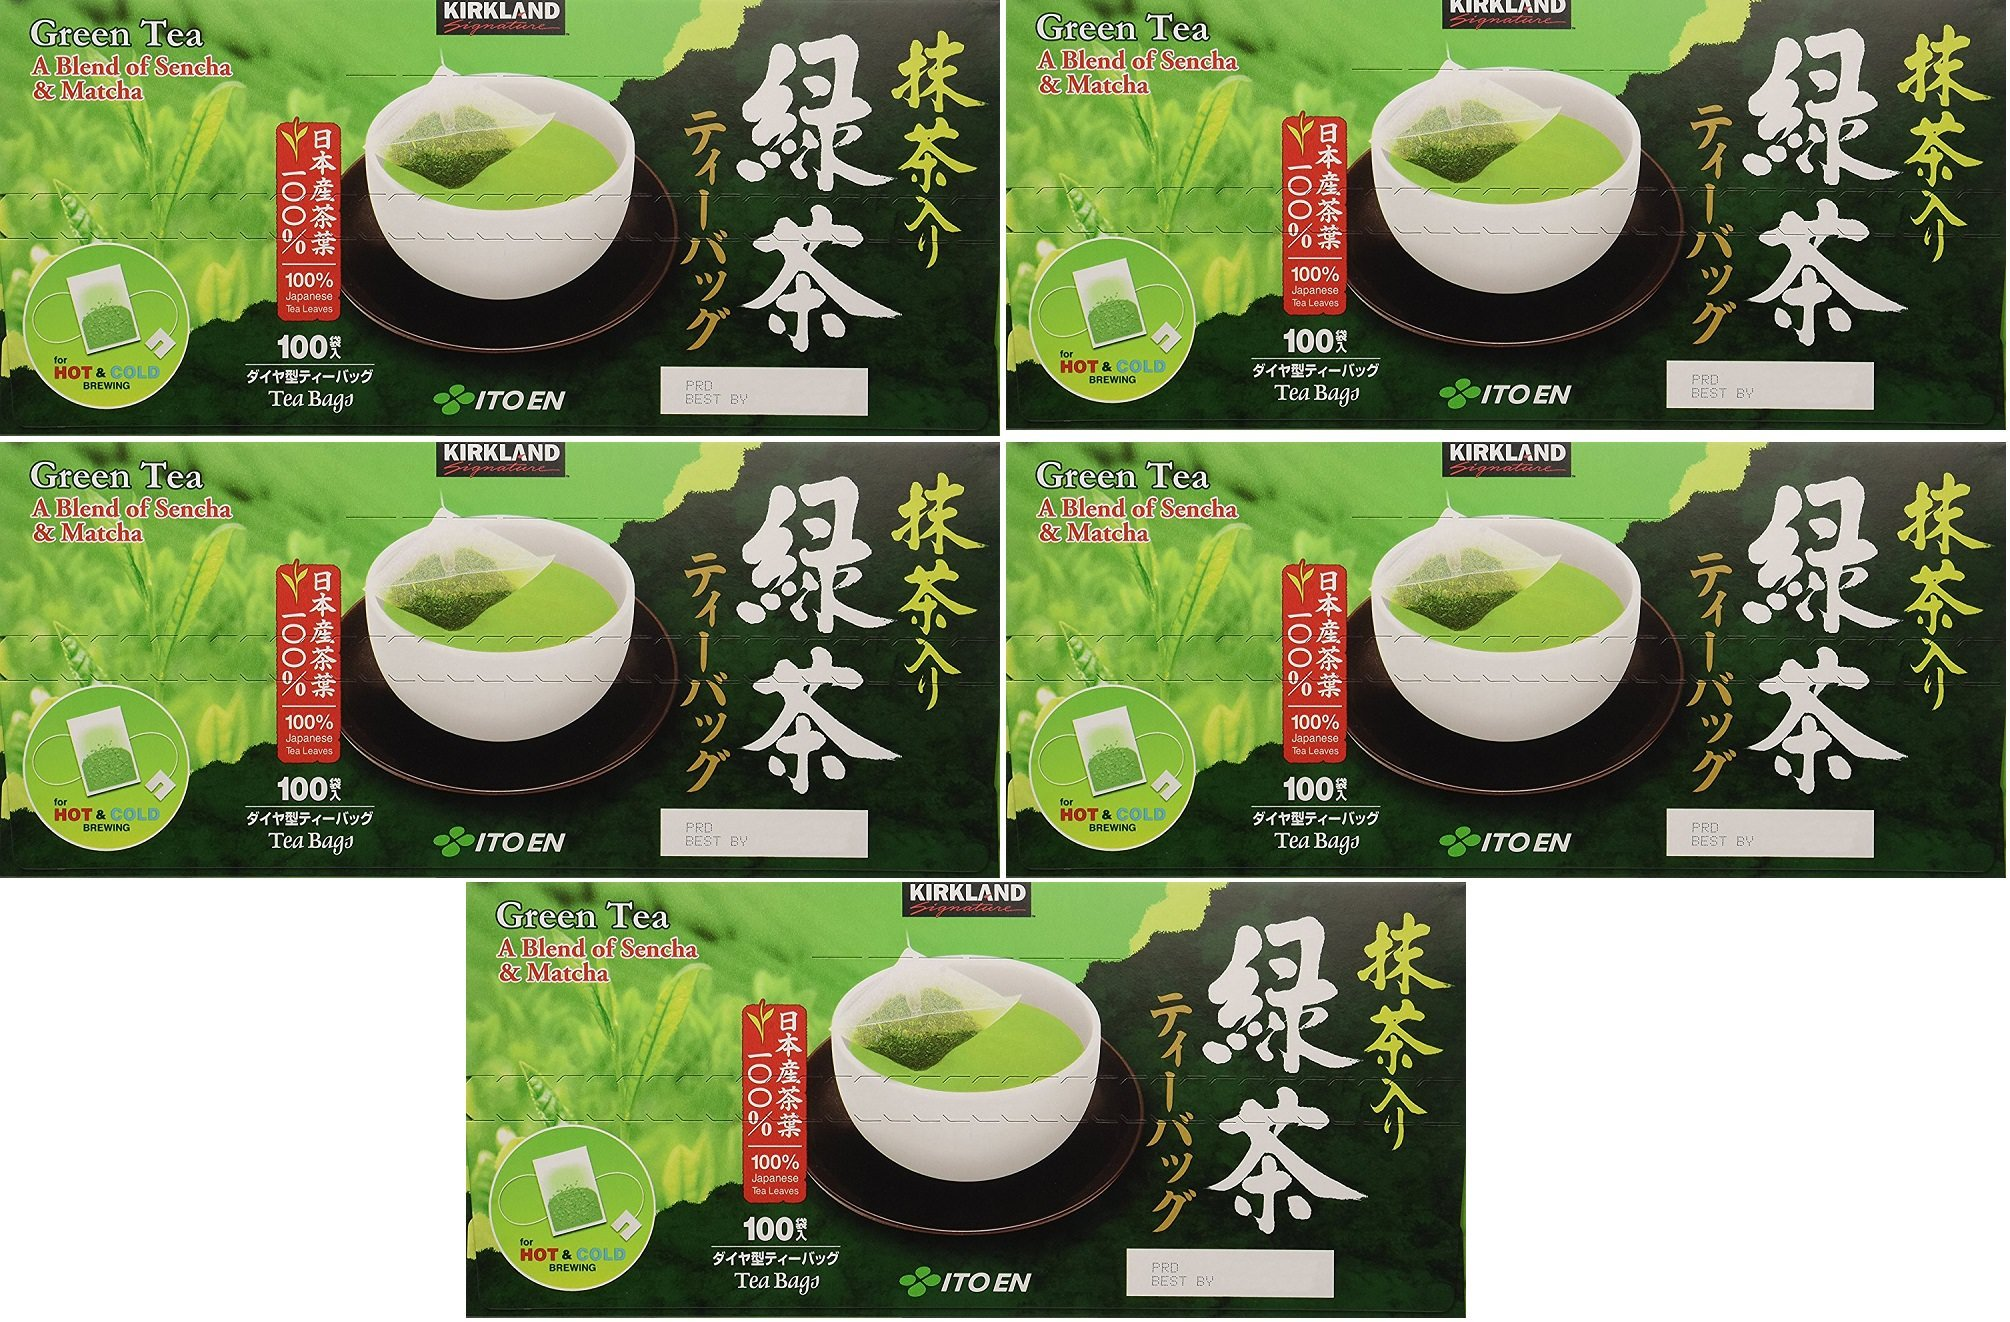 Kirkland Ito En Matcha Blend Japanese Green Tea, 1.5g Tea Bags (500 Count) by Kirkland Signature